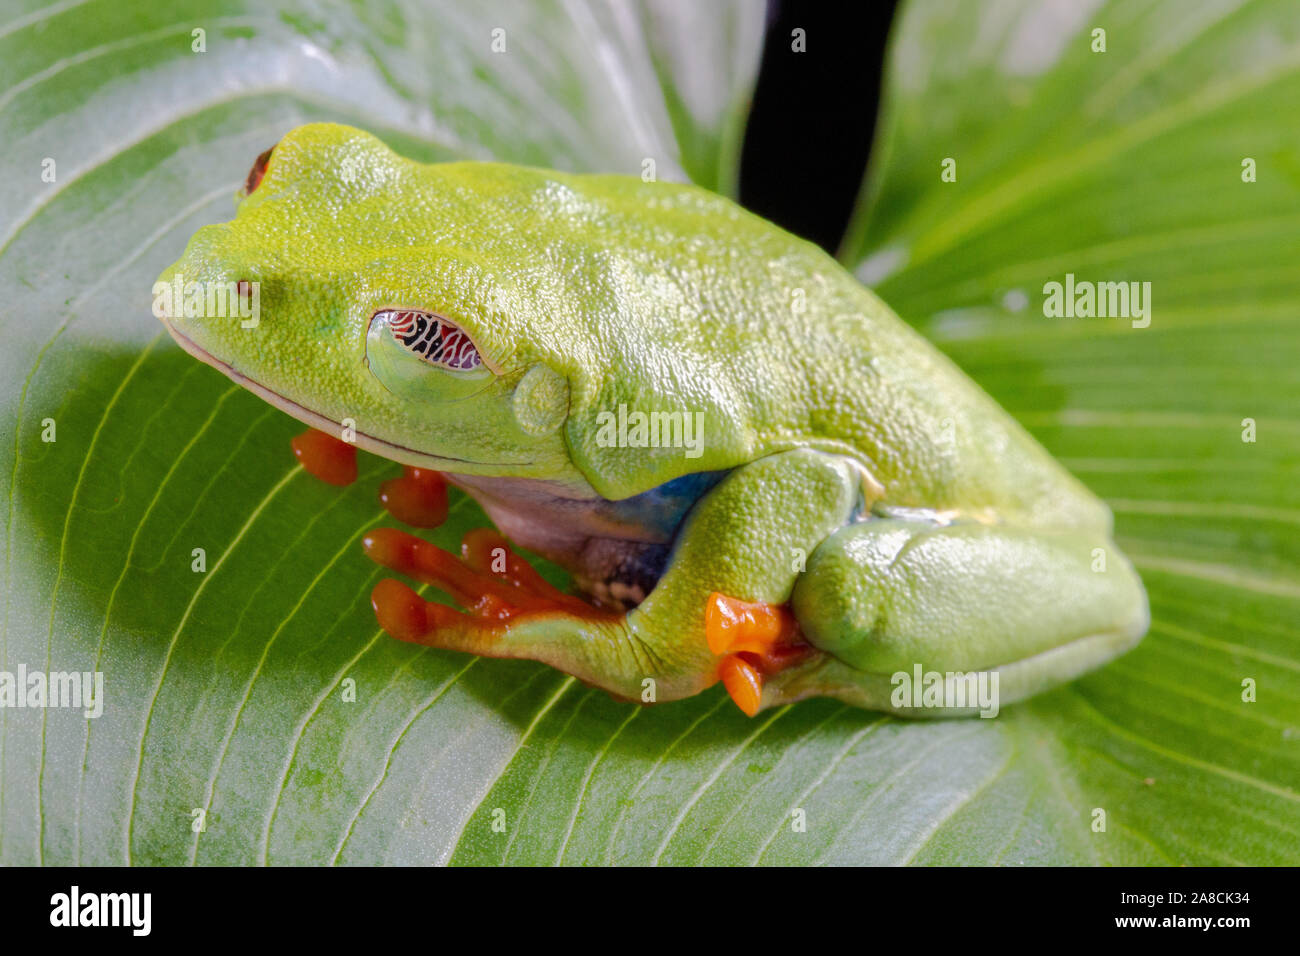 Red Eyed Tree Frog,  Agalychnis Callidryas, on a Leaf with Black Background Stock Photo